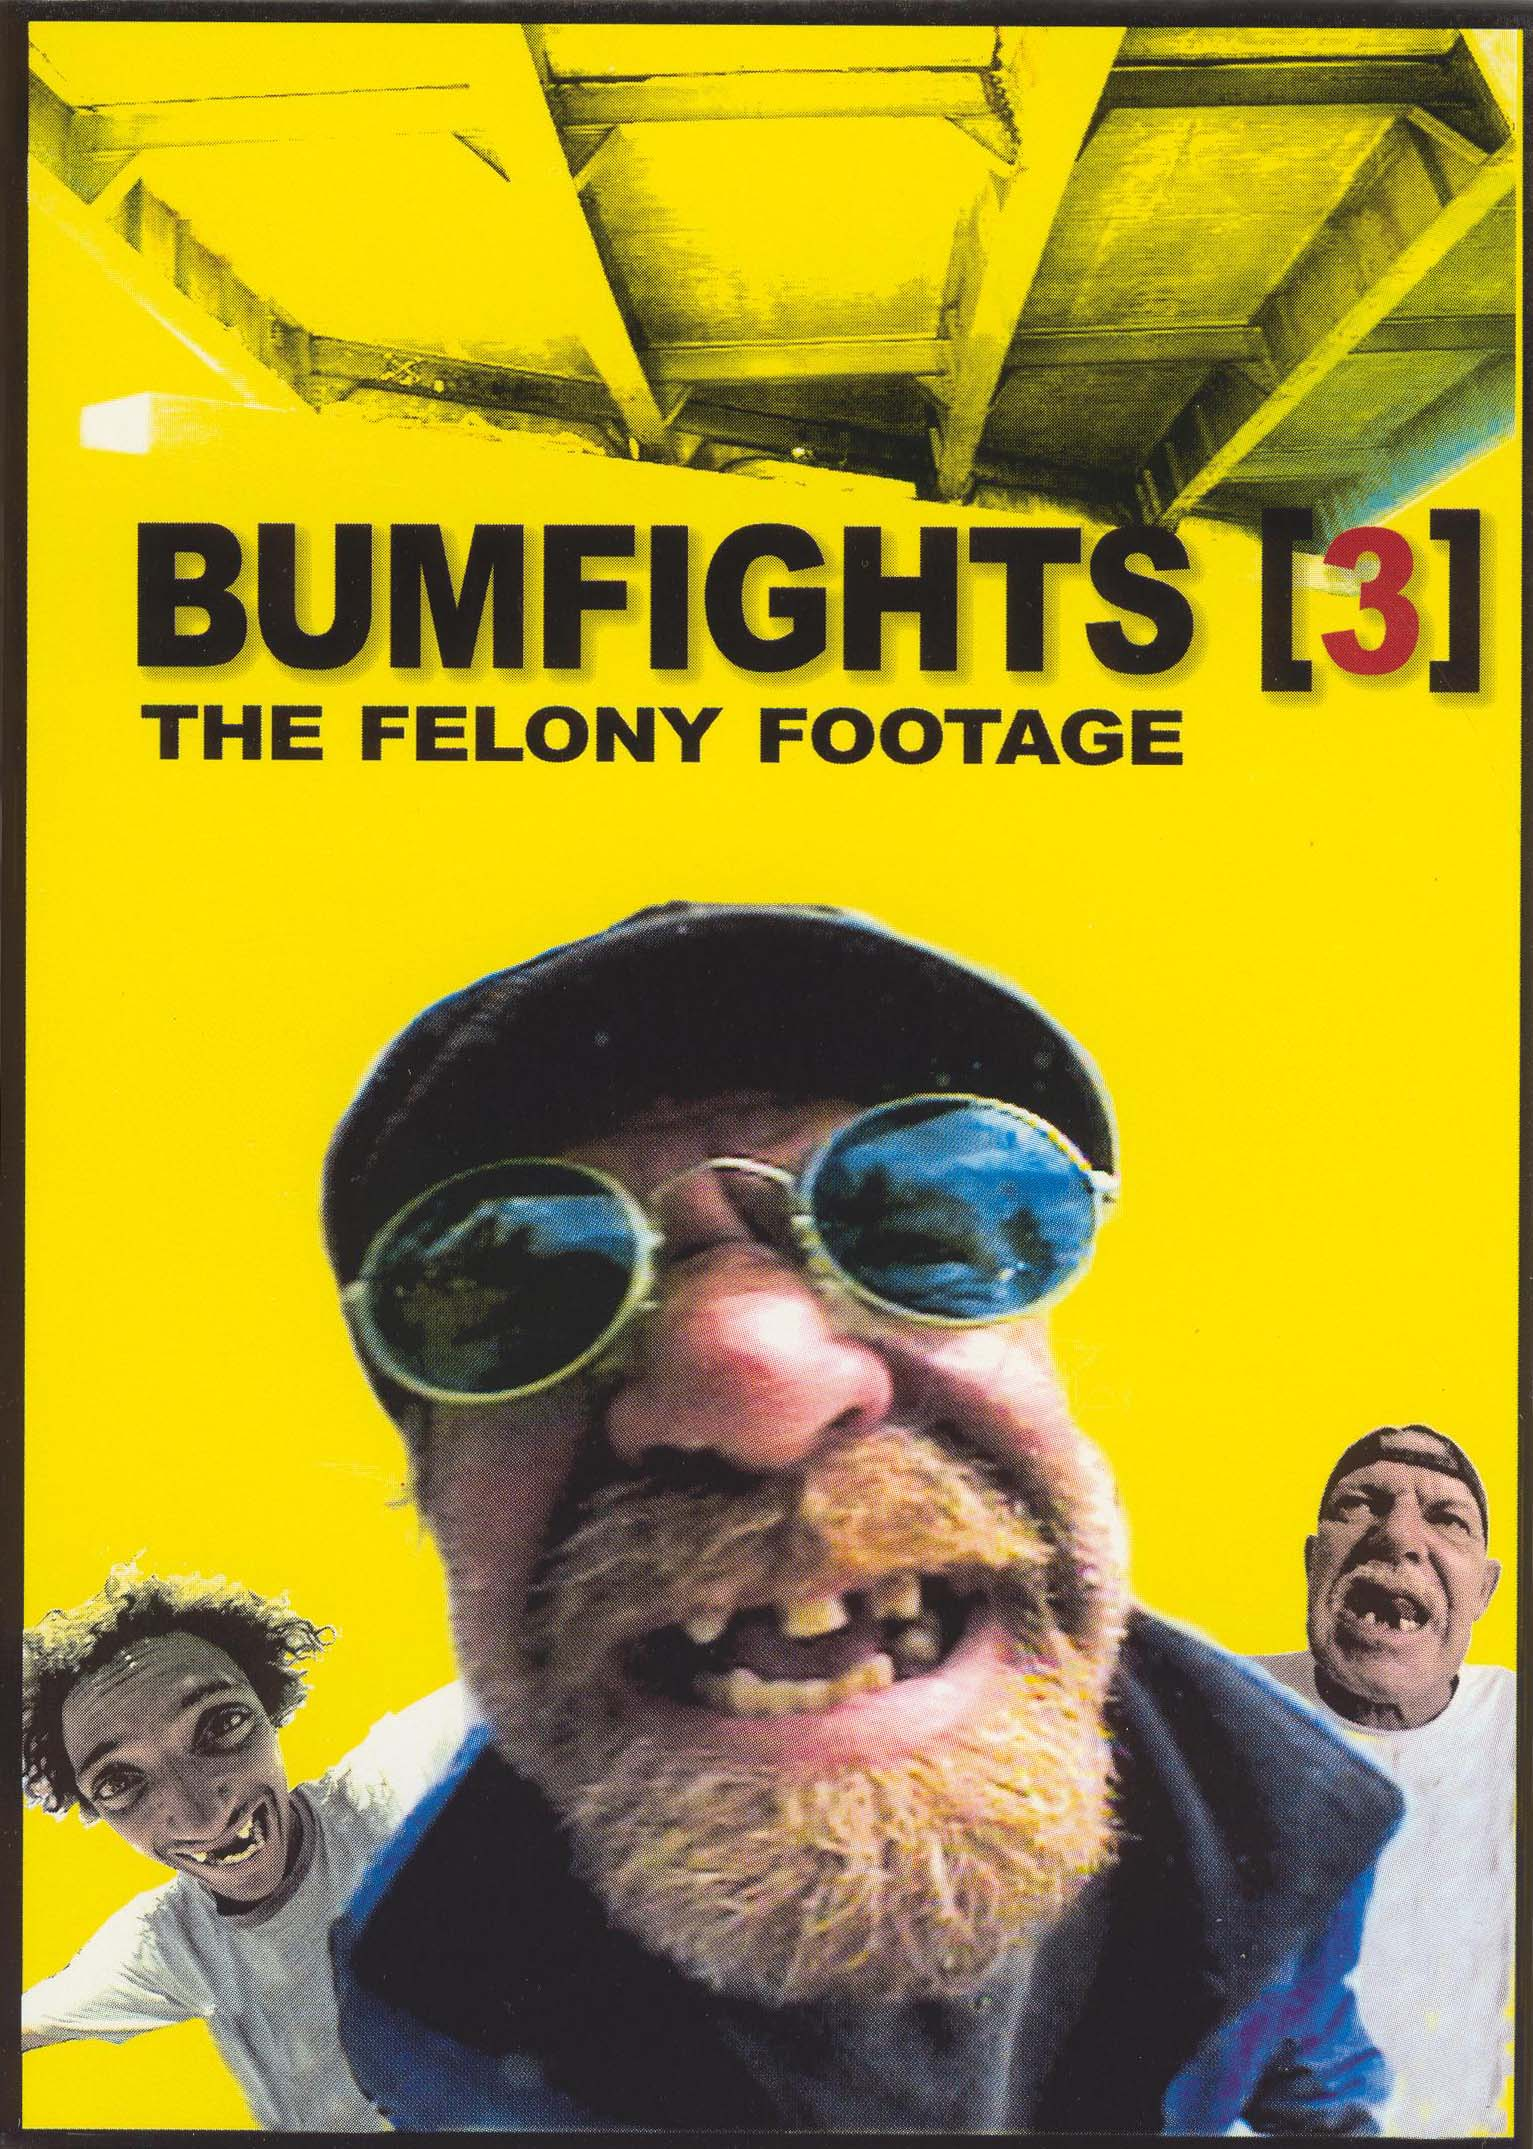 Bumfights, Vol. 3: The Felony Footage